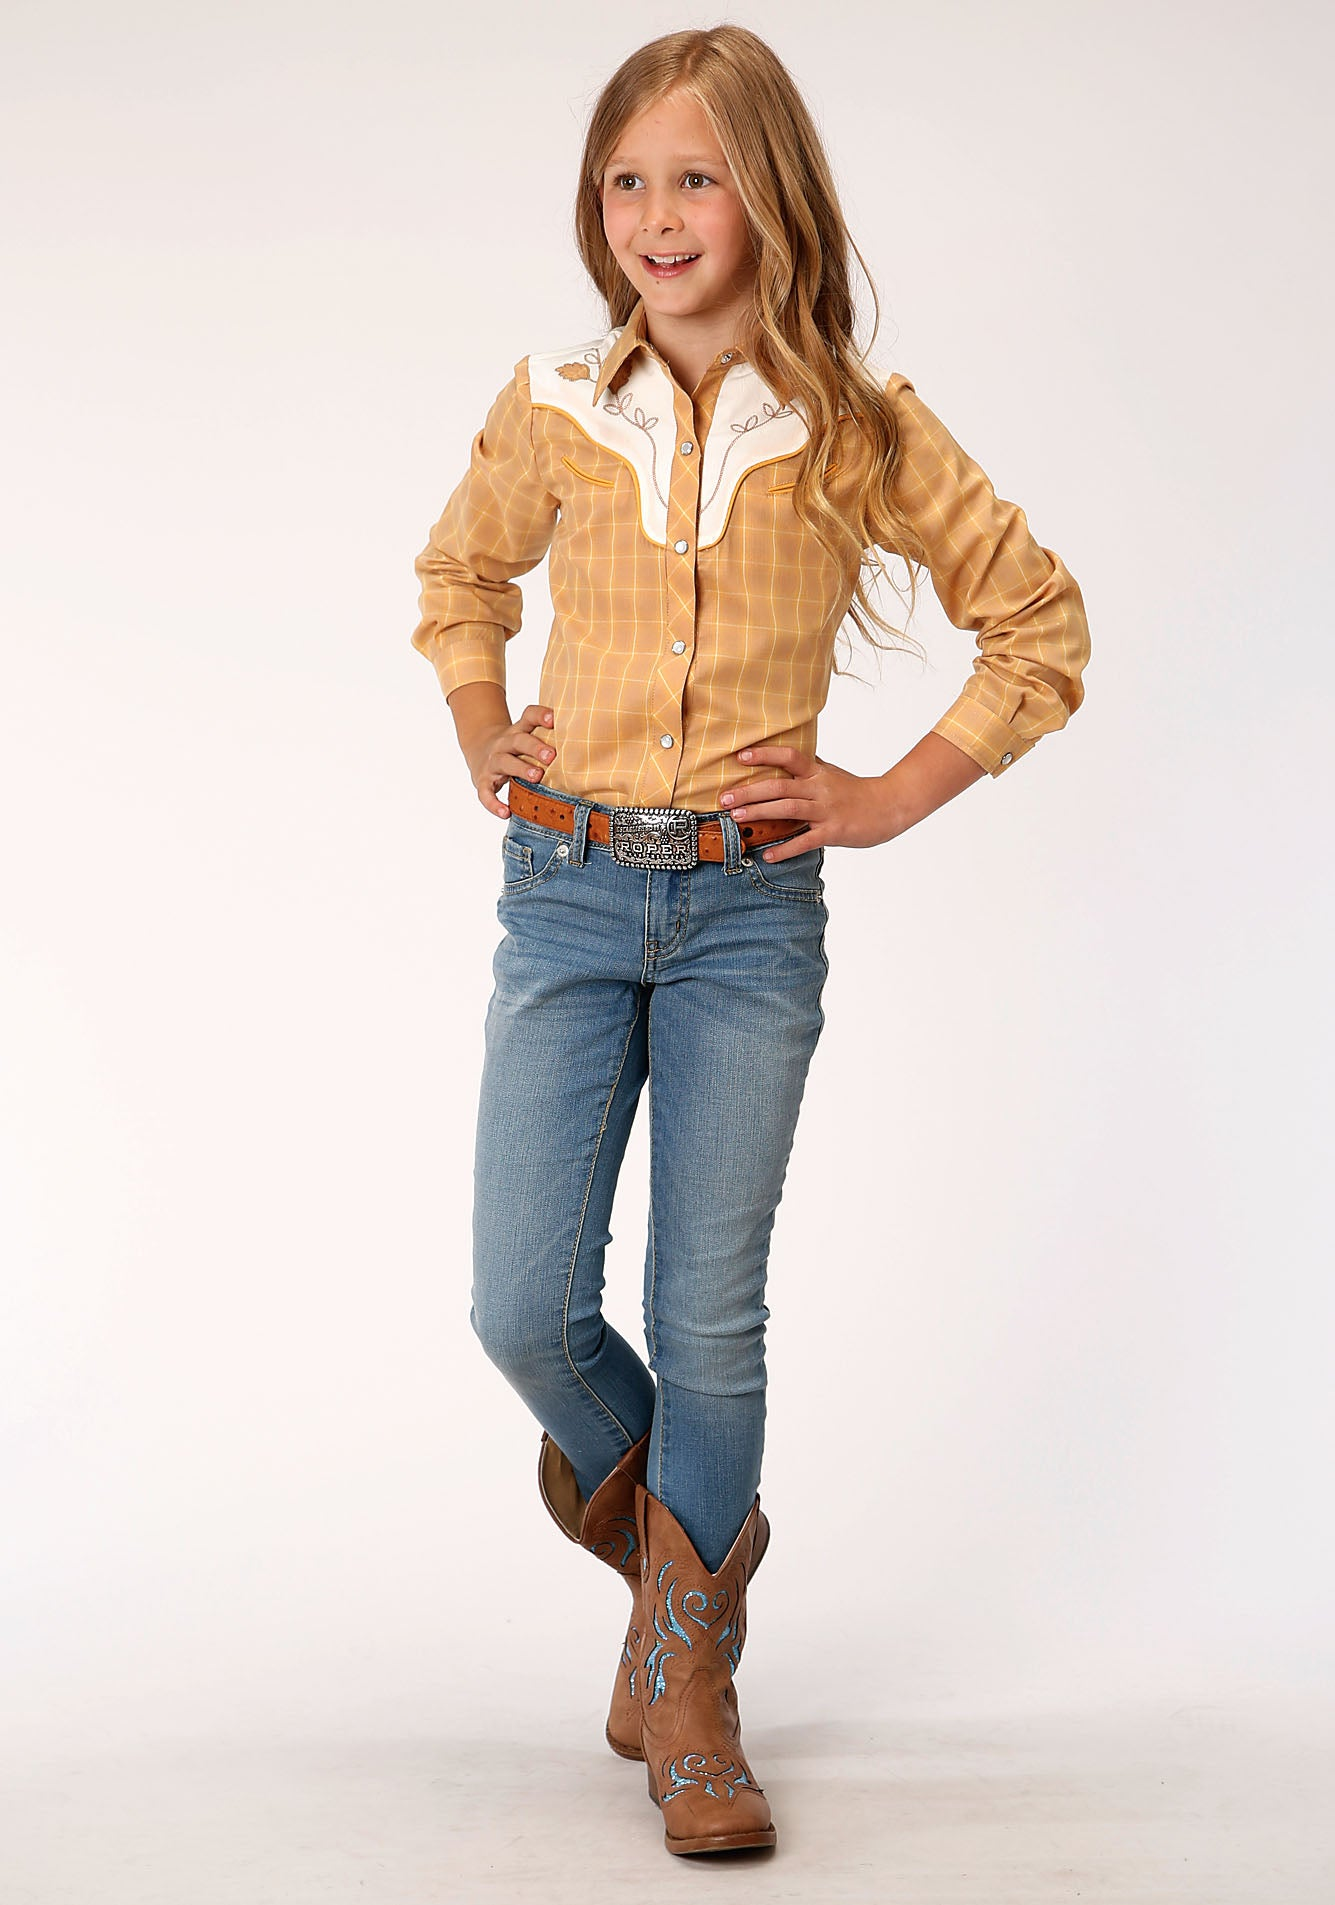 ROPER GIRLS BROWN 00047 BUTTERSCOTCH PLAID KARMAN SPECIAL STYLES LONG SLEEVE